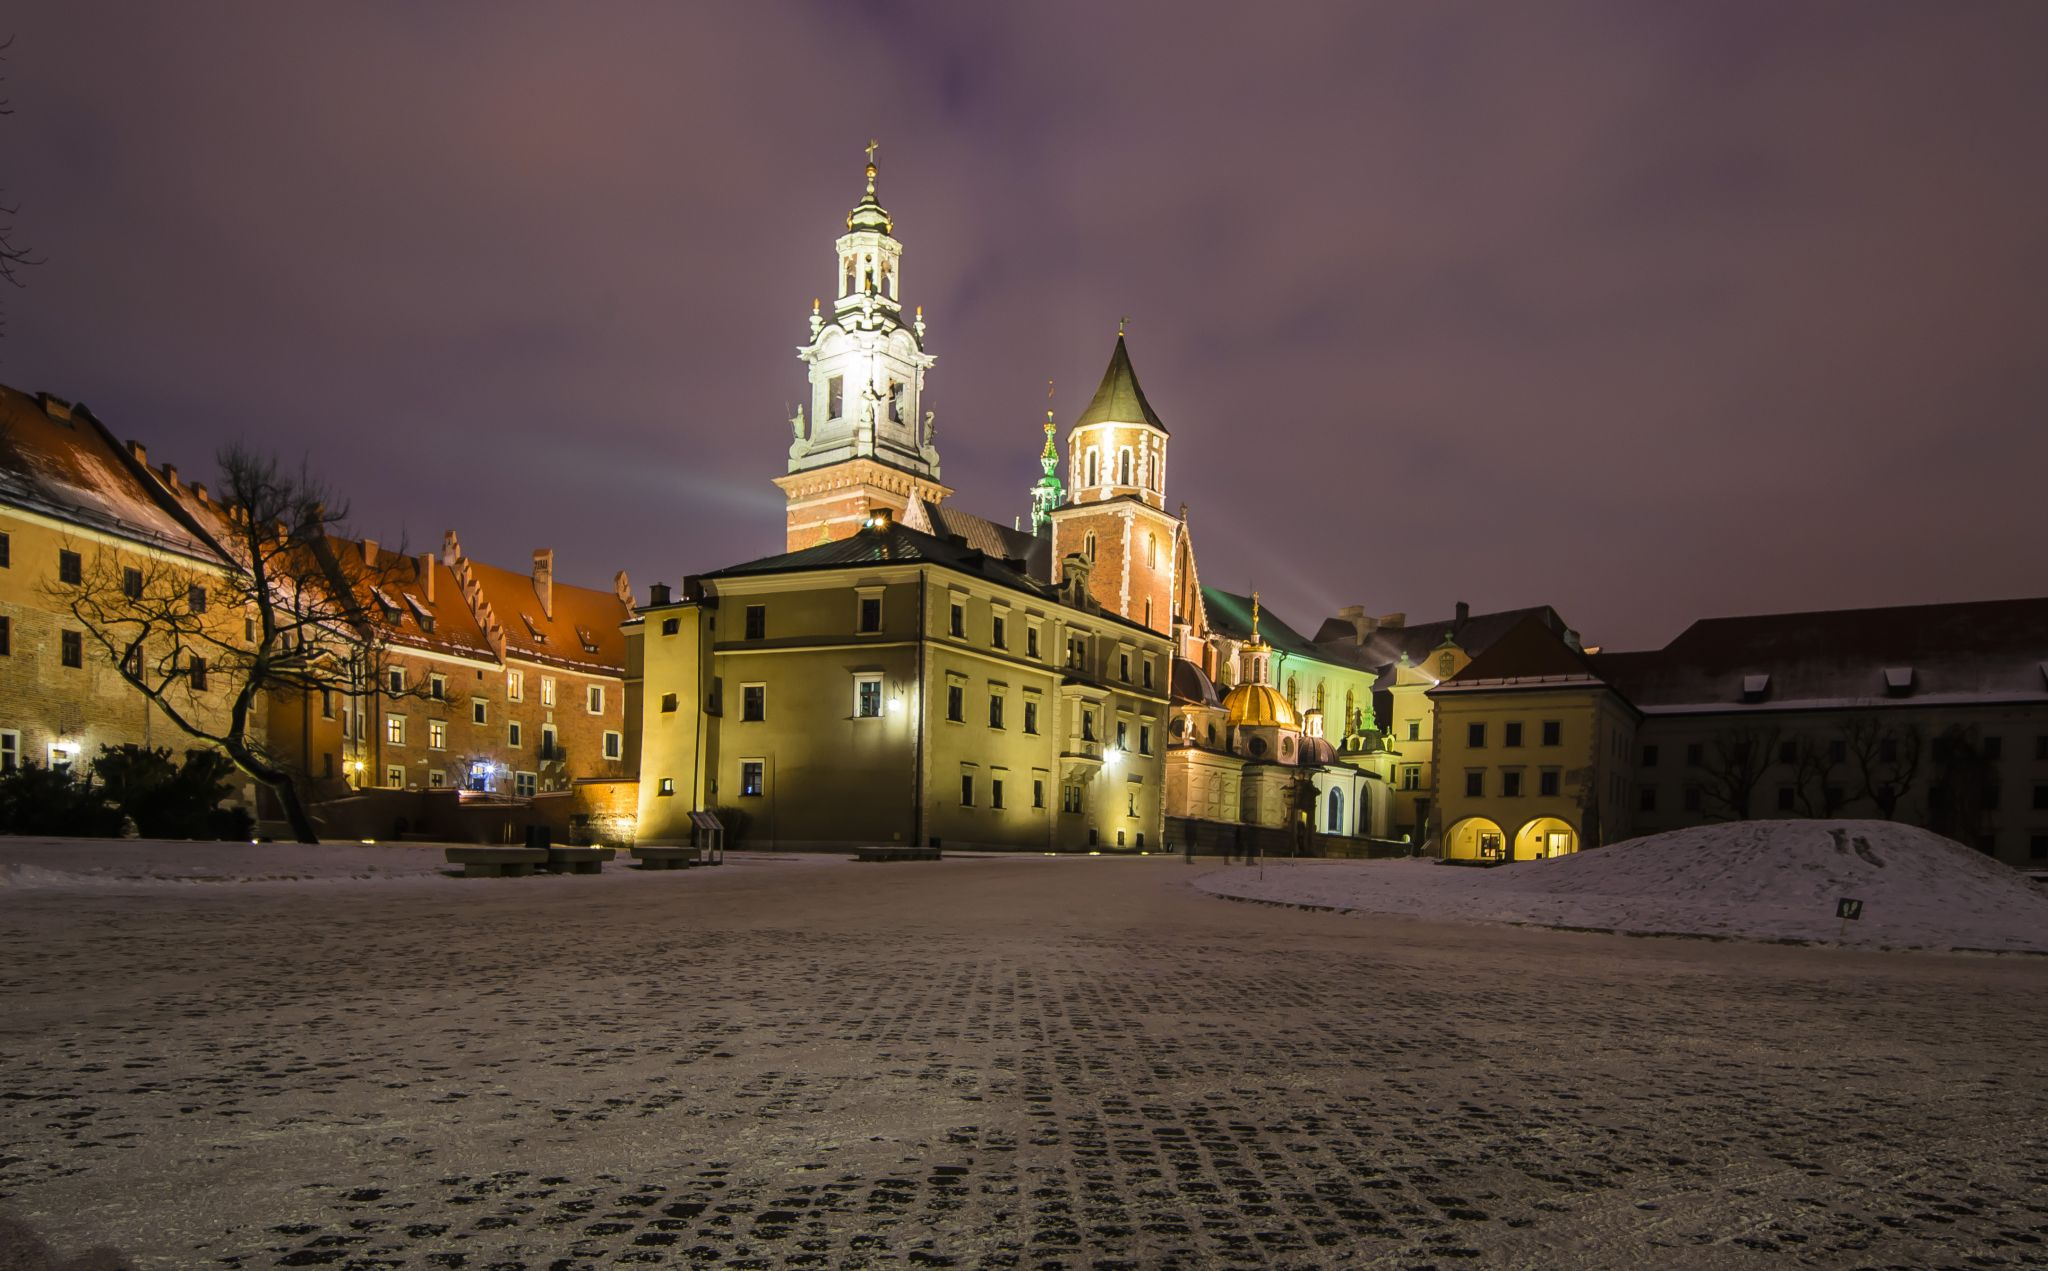 The castle at night, Poland